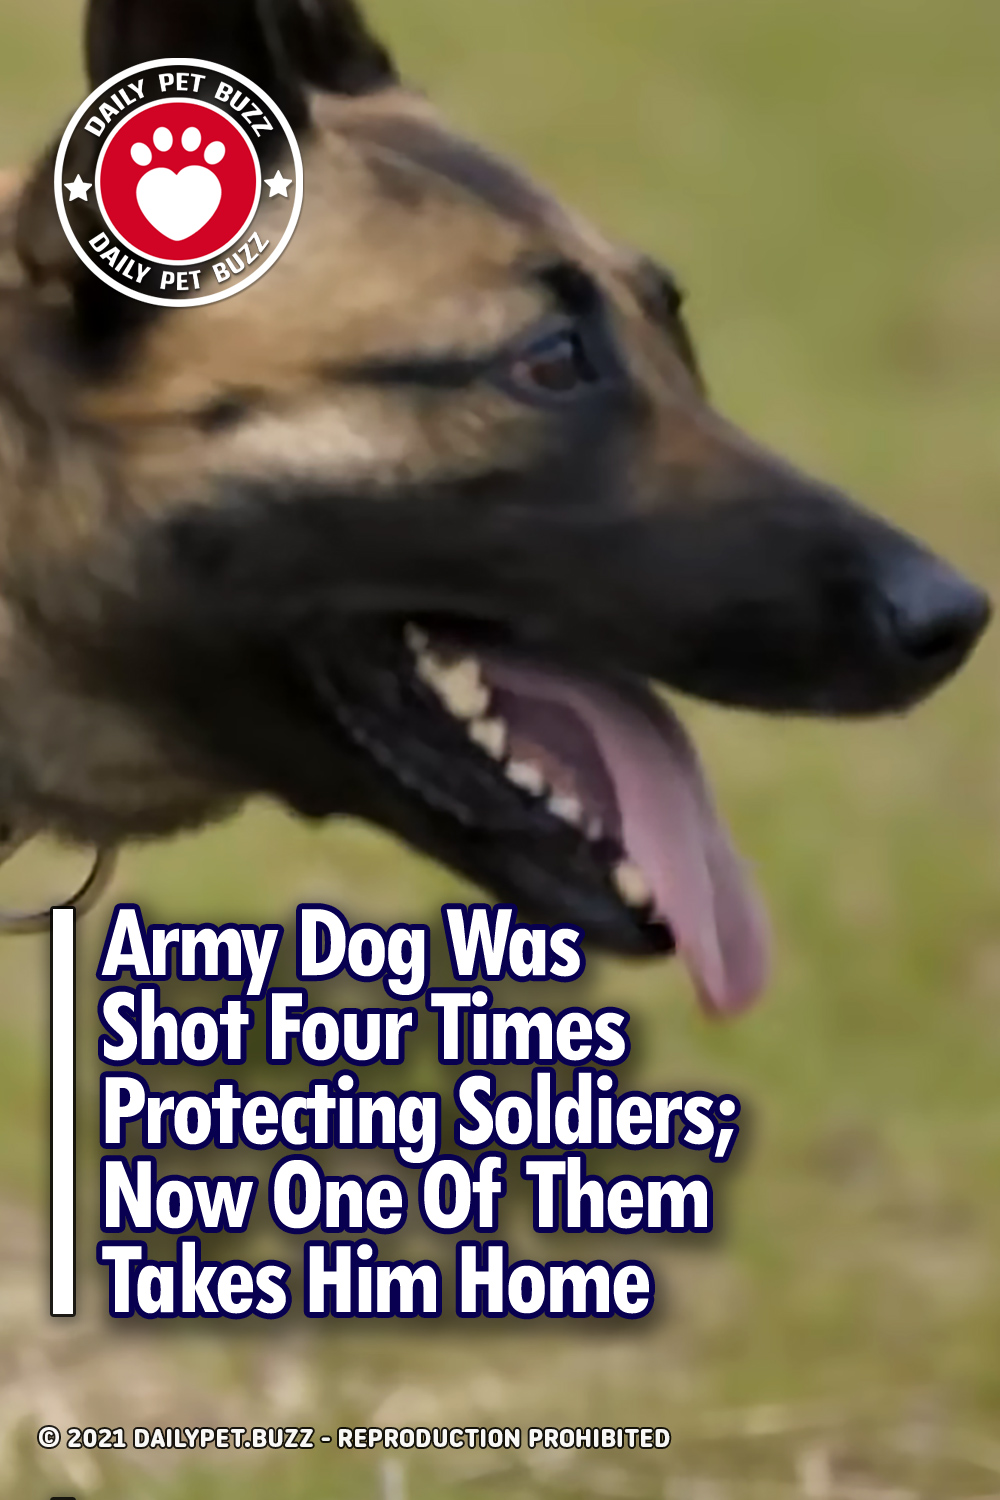 Army Dog Was Shot Four Times Protecting Soldiers; Now One Of Them Takes Him Home